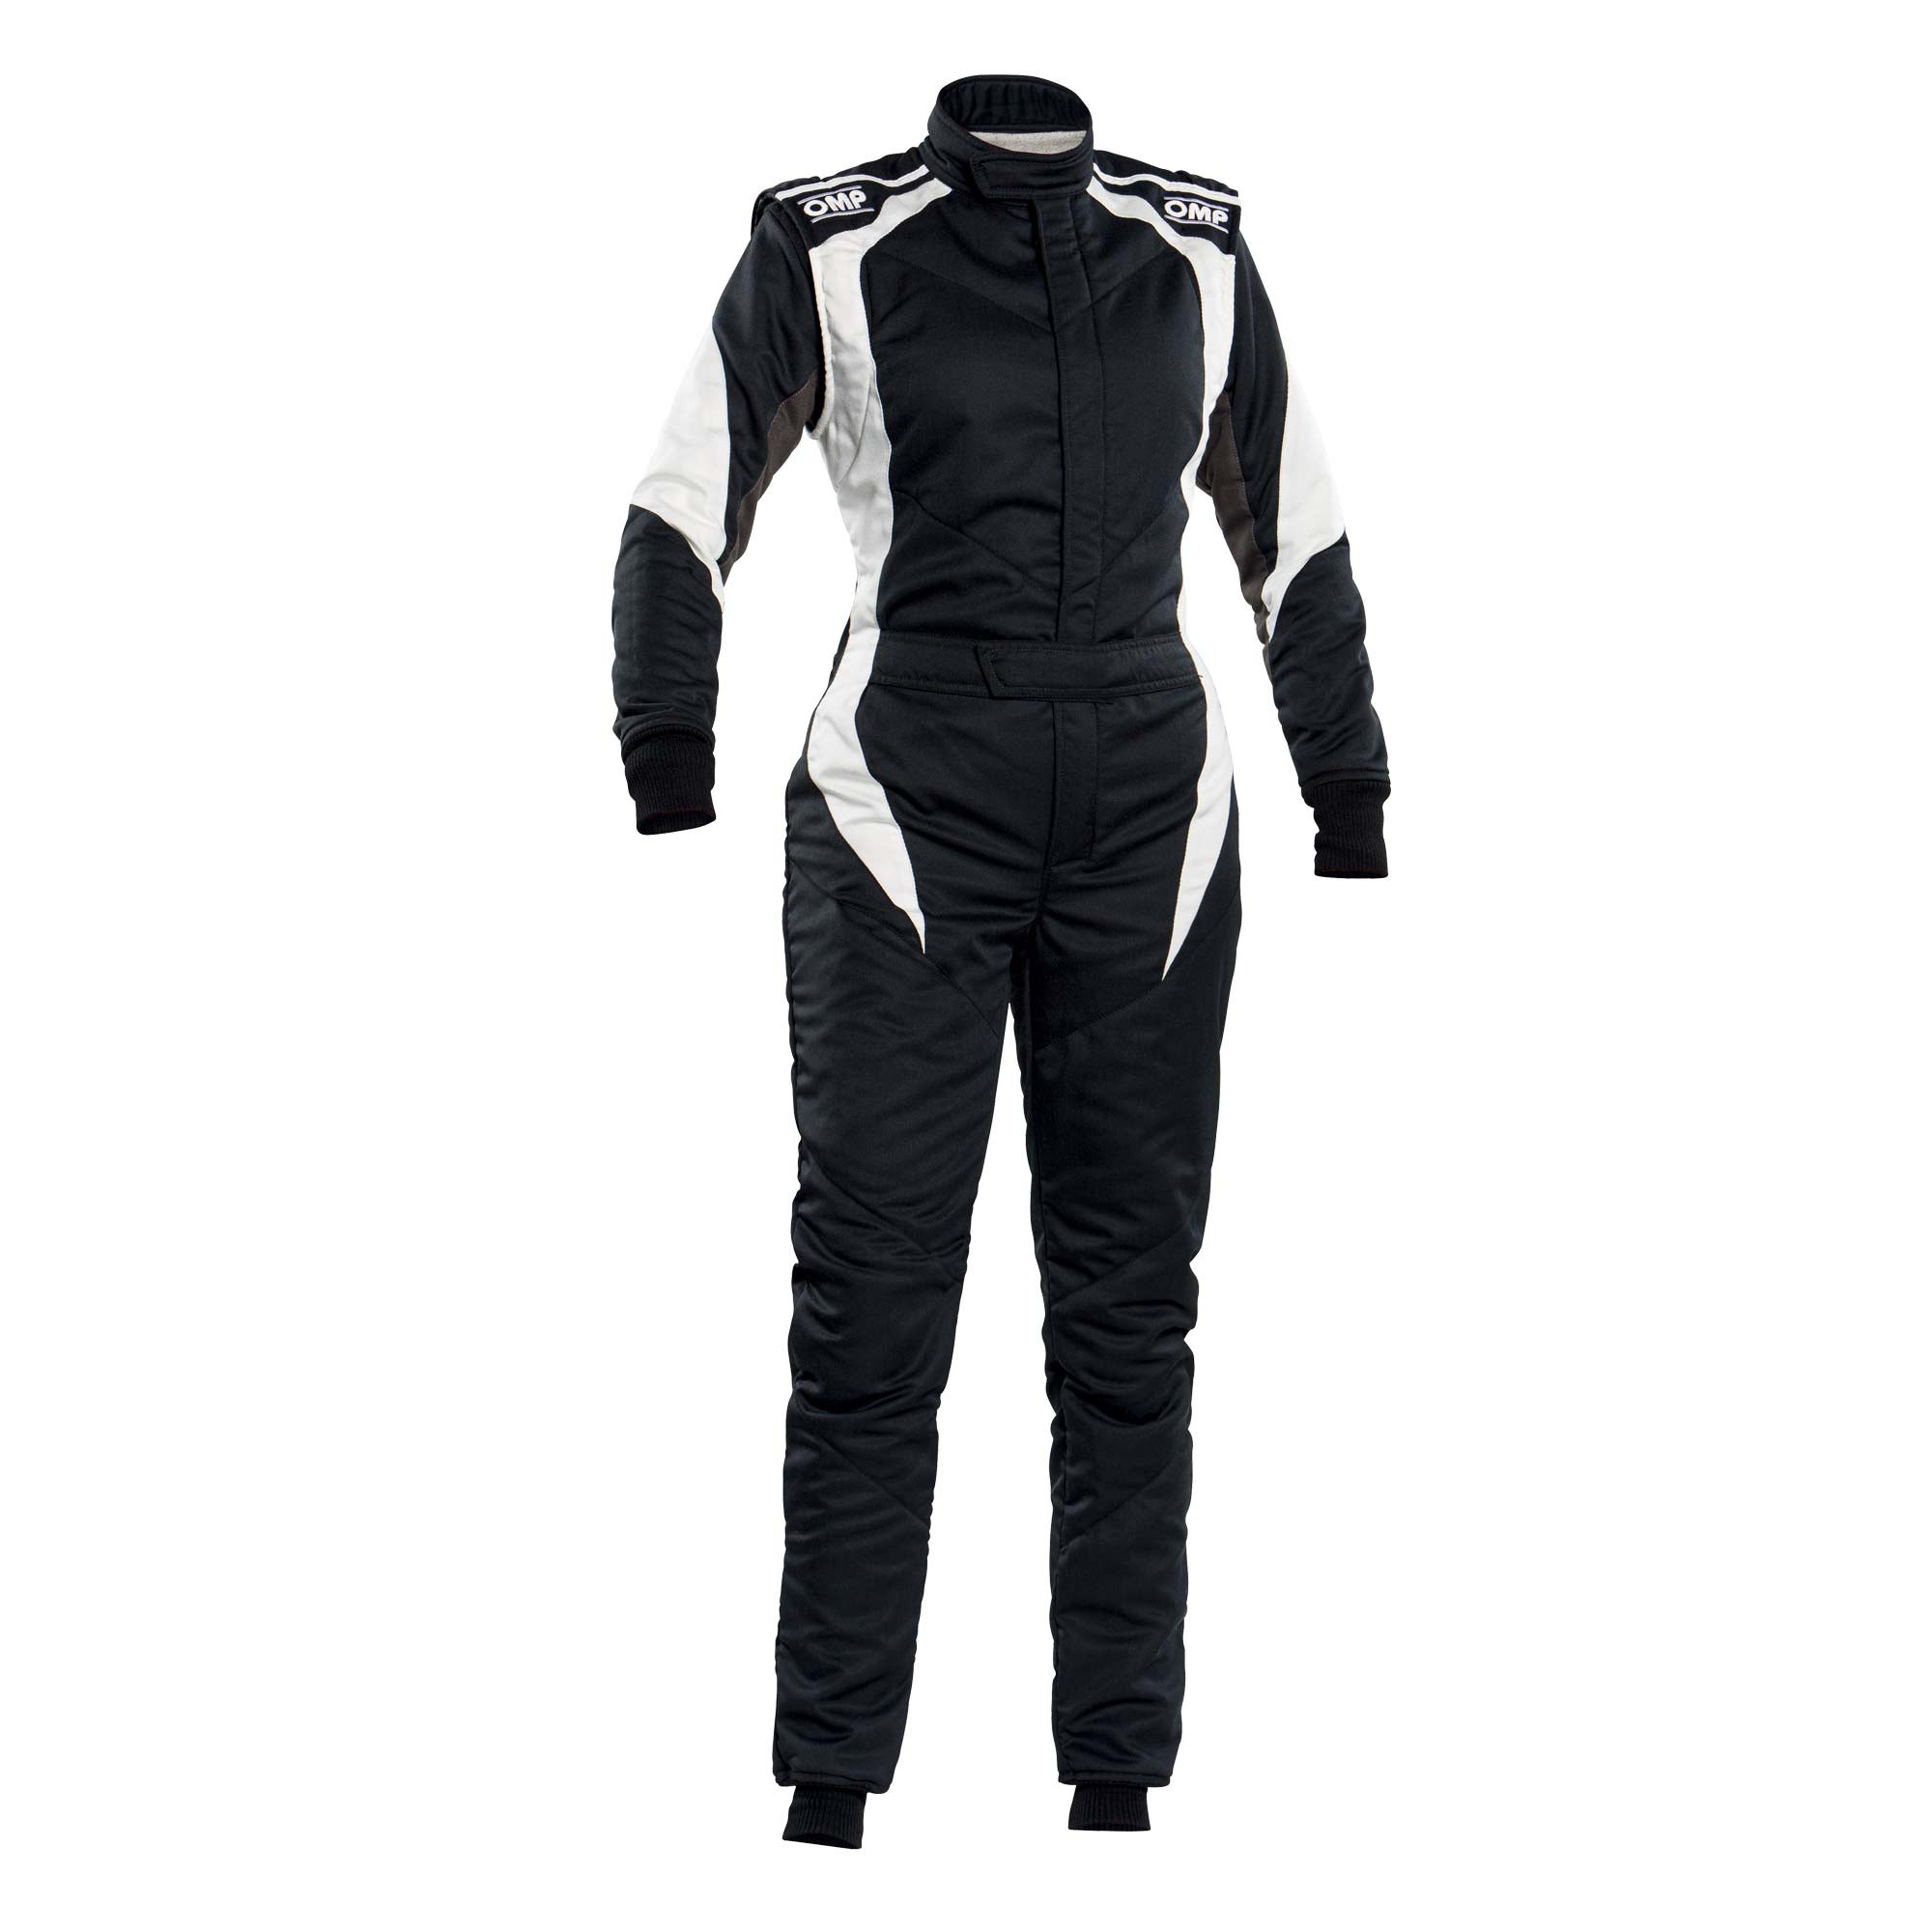 FIRST ELLE OVERALL BLACK/WHITE SIZE 38 FOR WOMEN - FIA 8856-2018